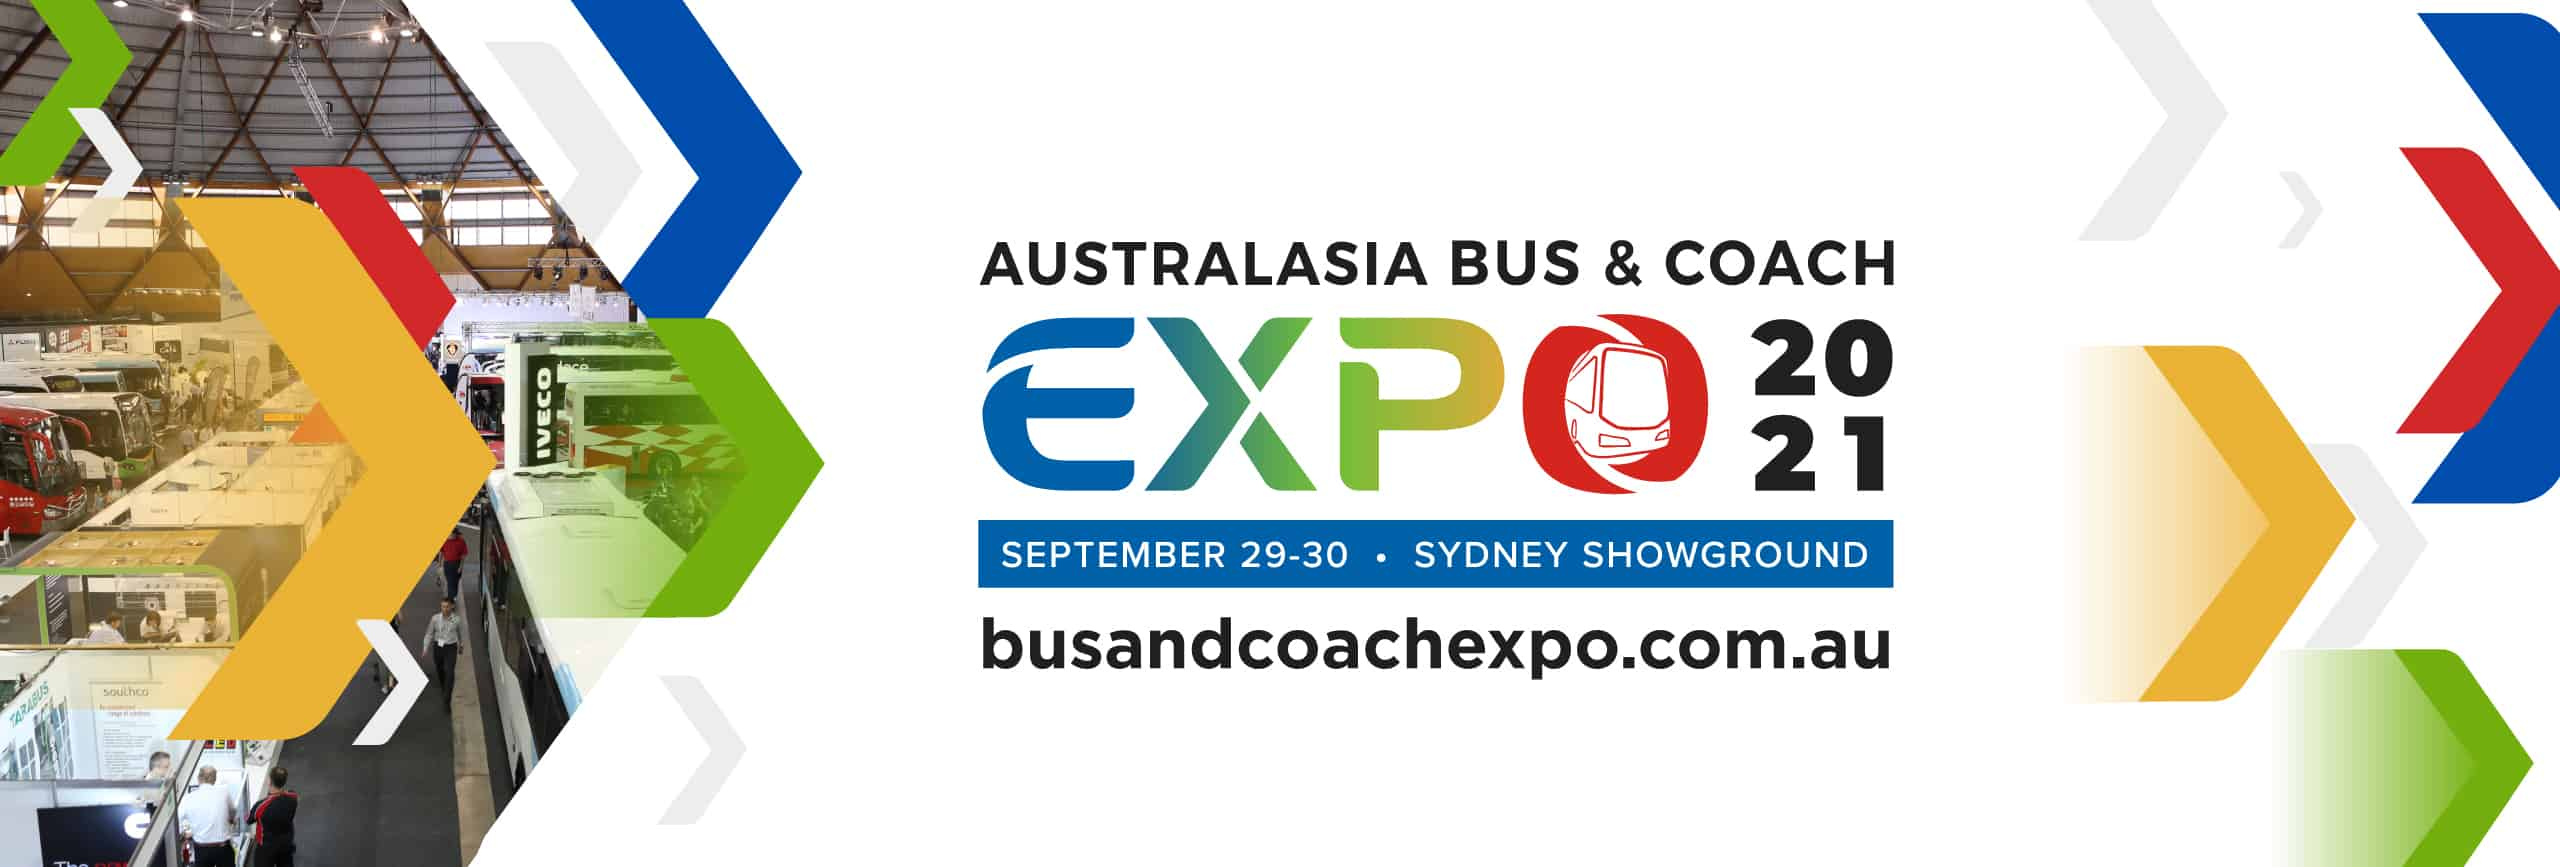 21296 BusNSW Bus And Coach Expo Banners V2